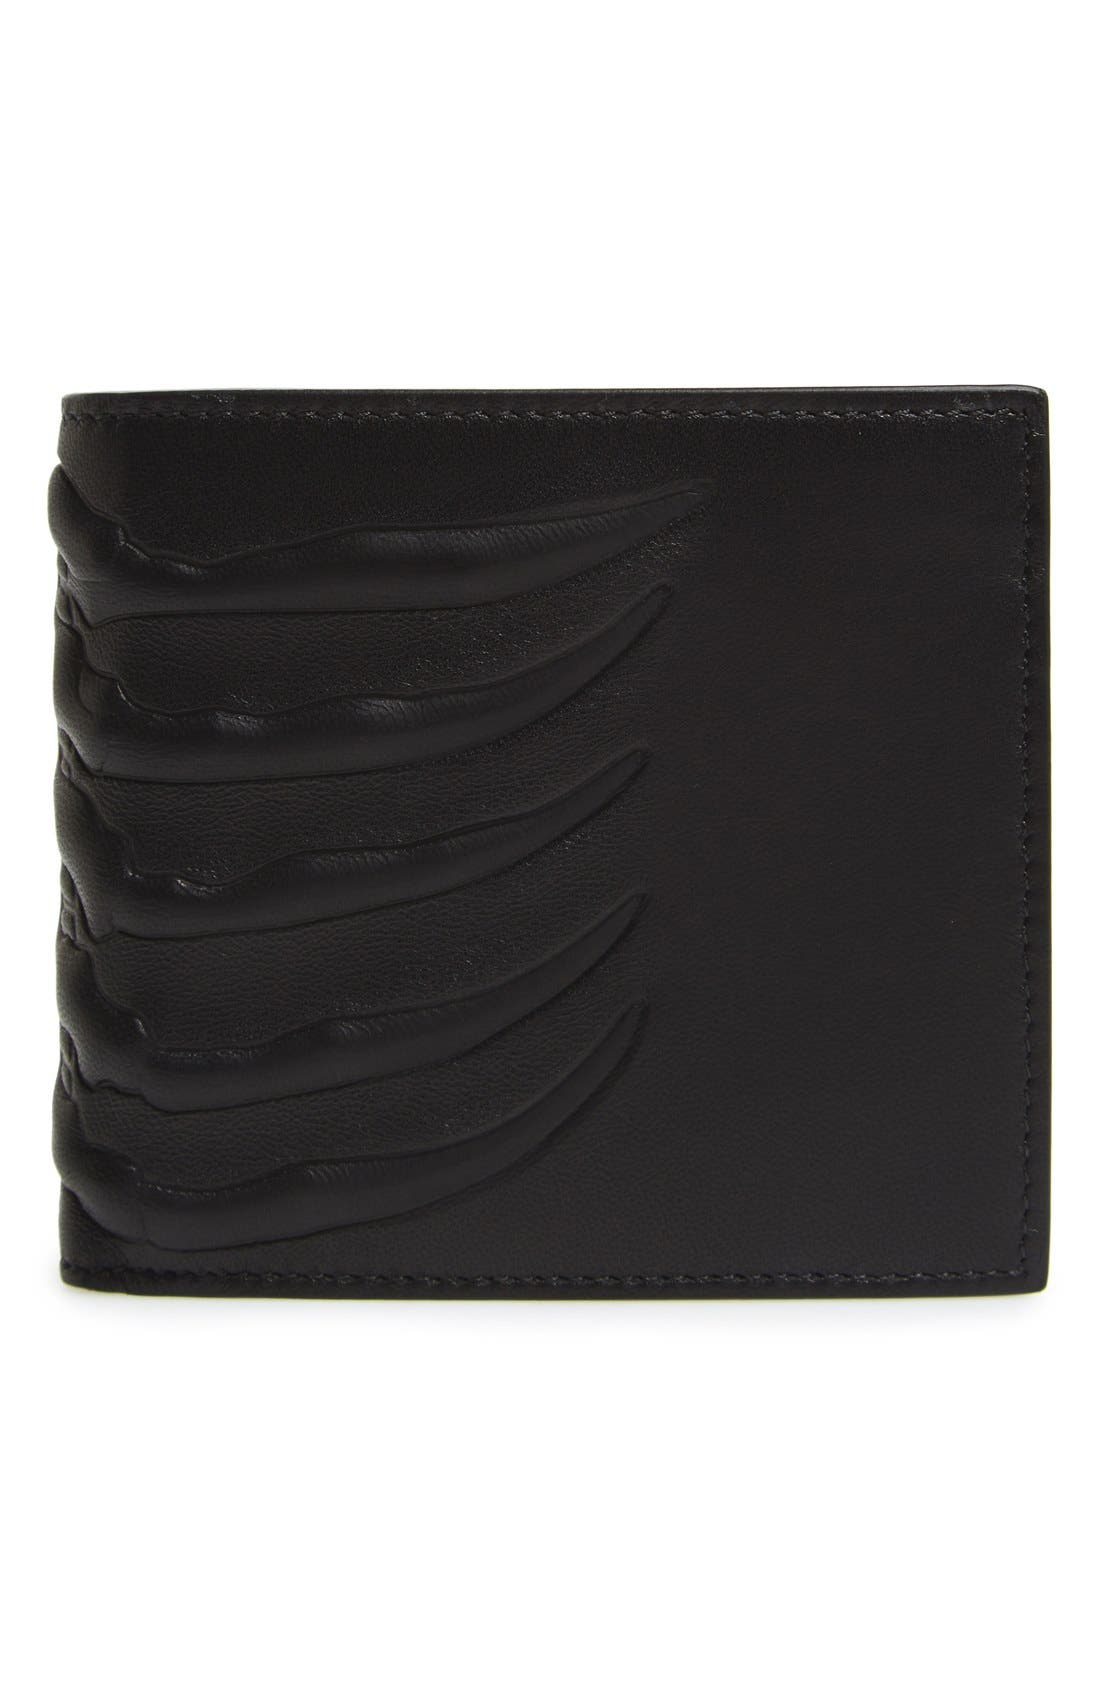 Ribcage Leather Wallet,                         Main,                         color, 001